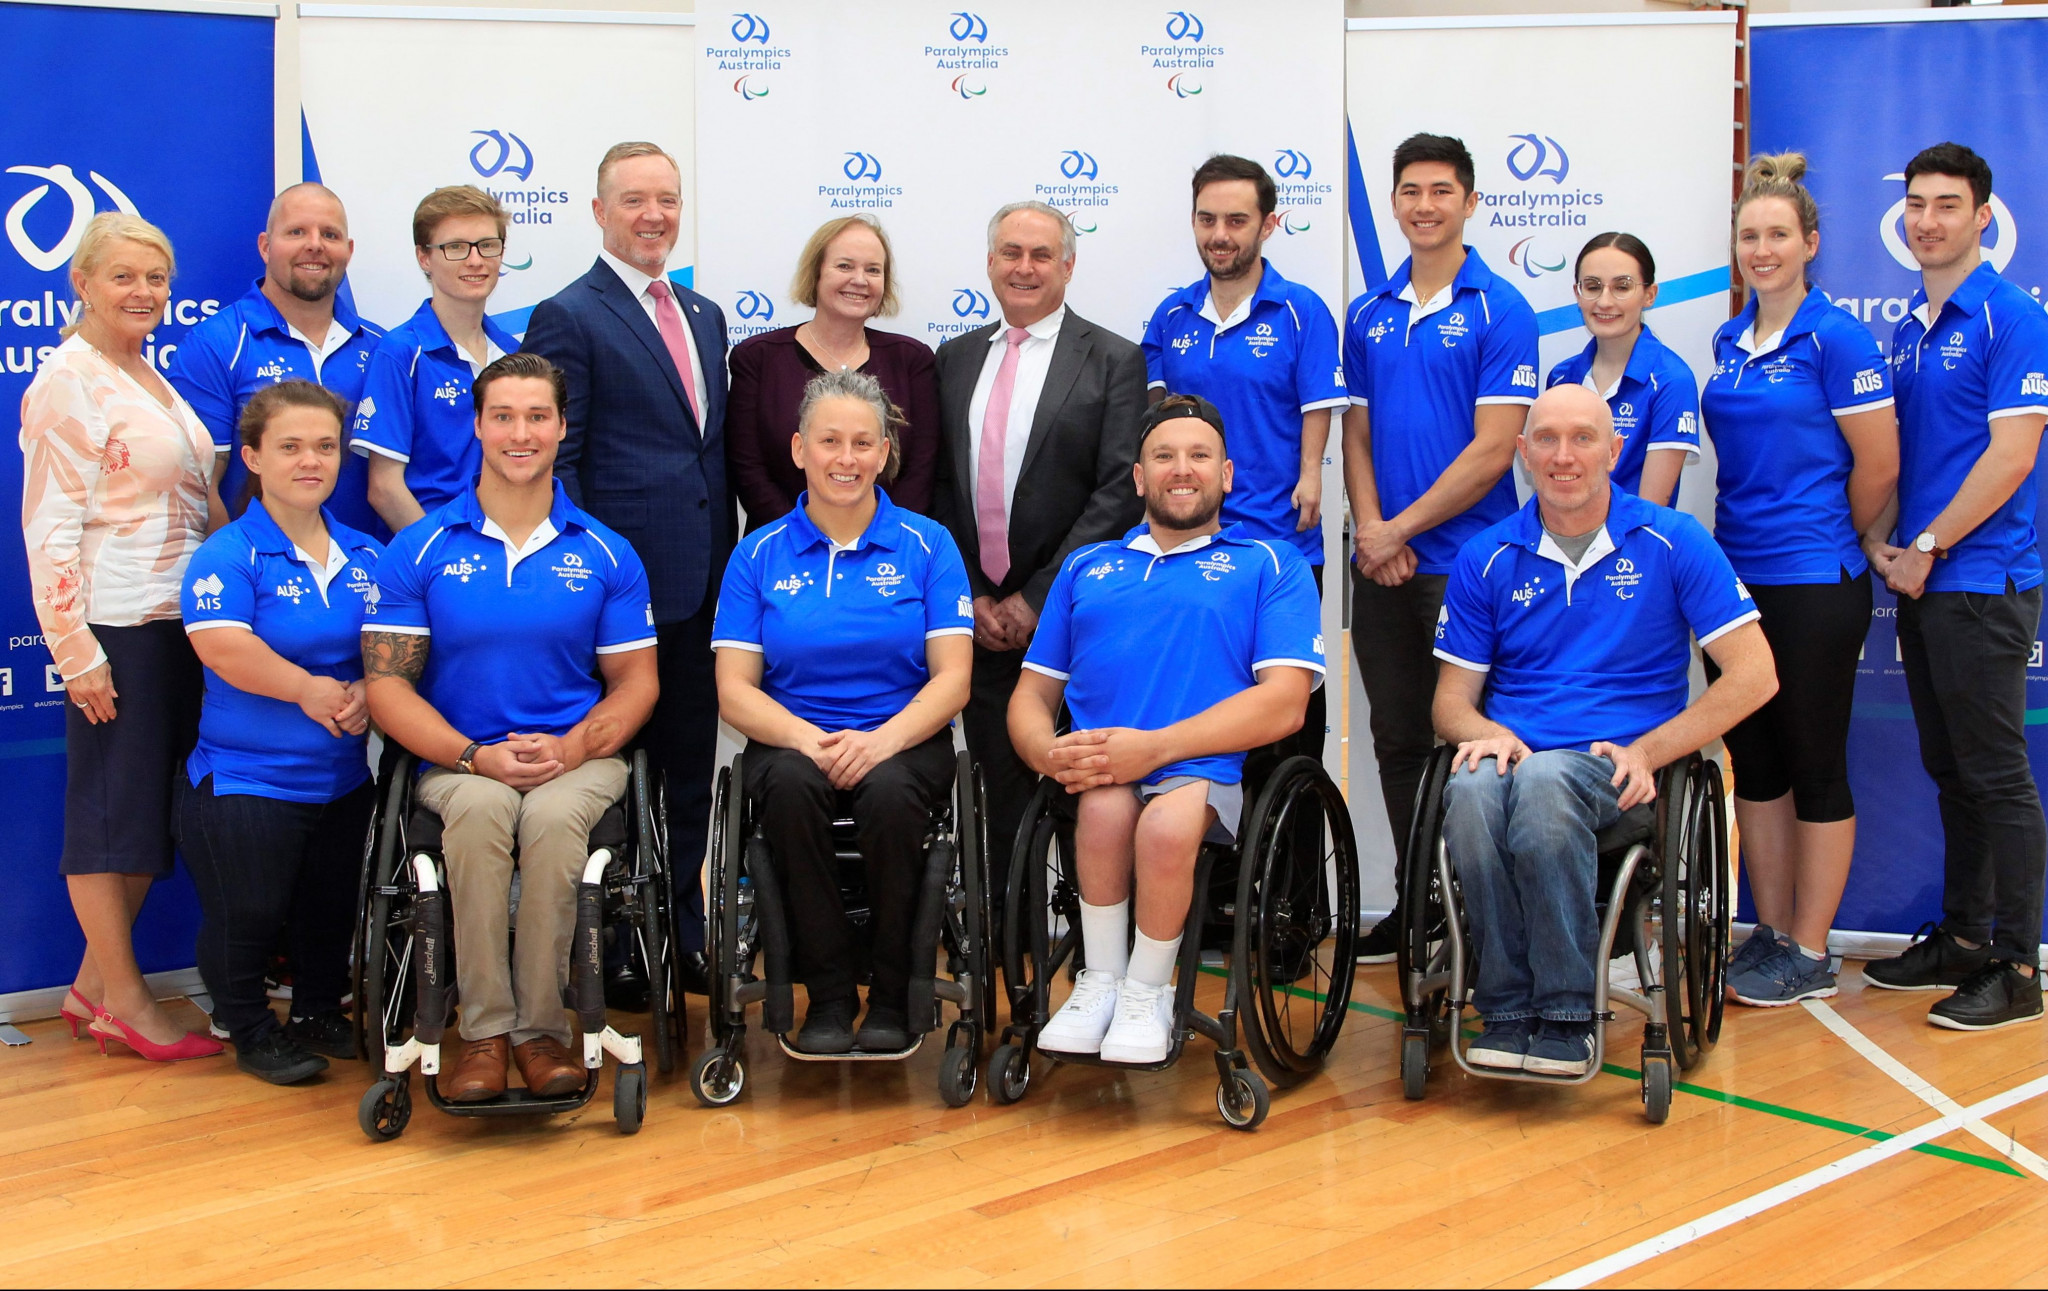 Australia's Labor Party, seeking election on Saturday, has announced a commitment to Para athletics of AUSD$6million if it is successful ©paralympic.org.au